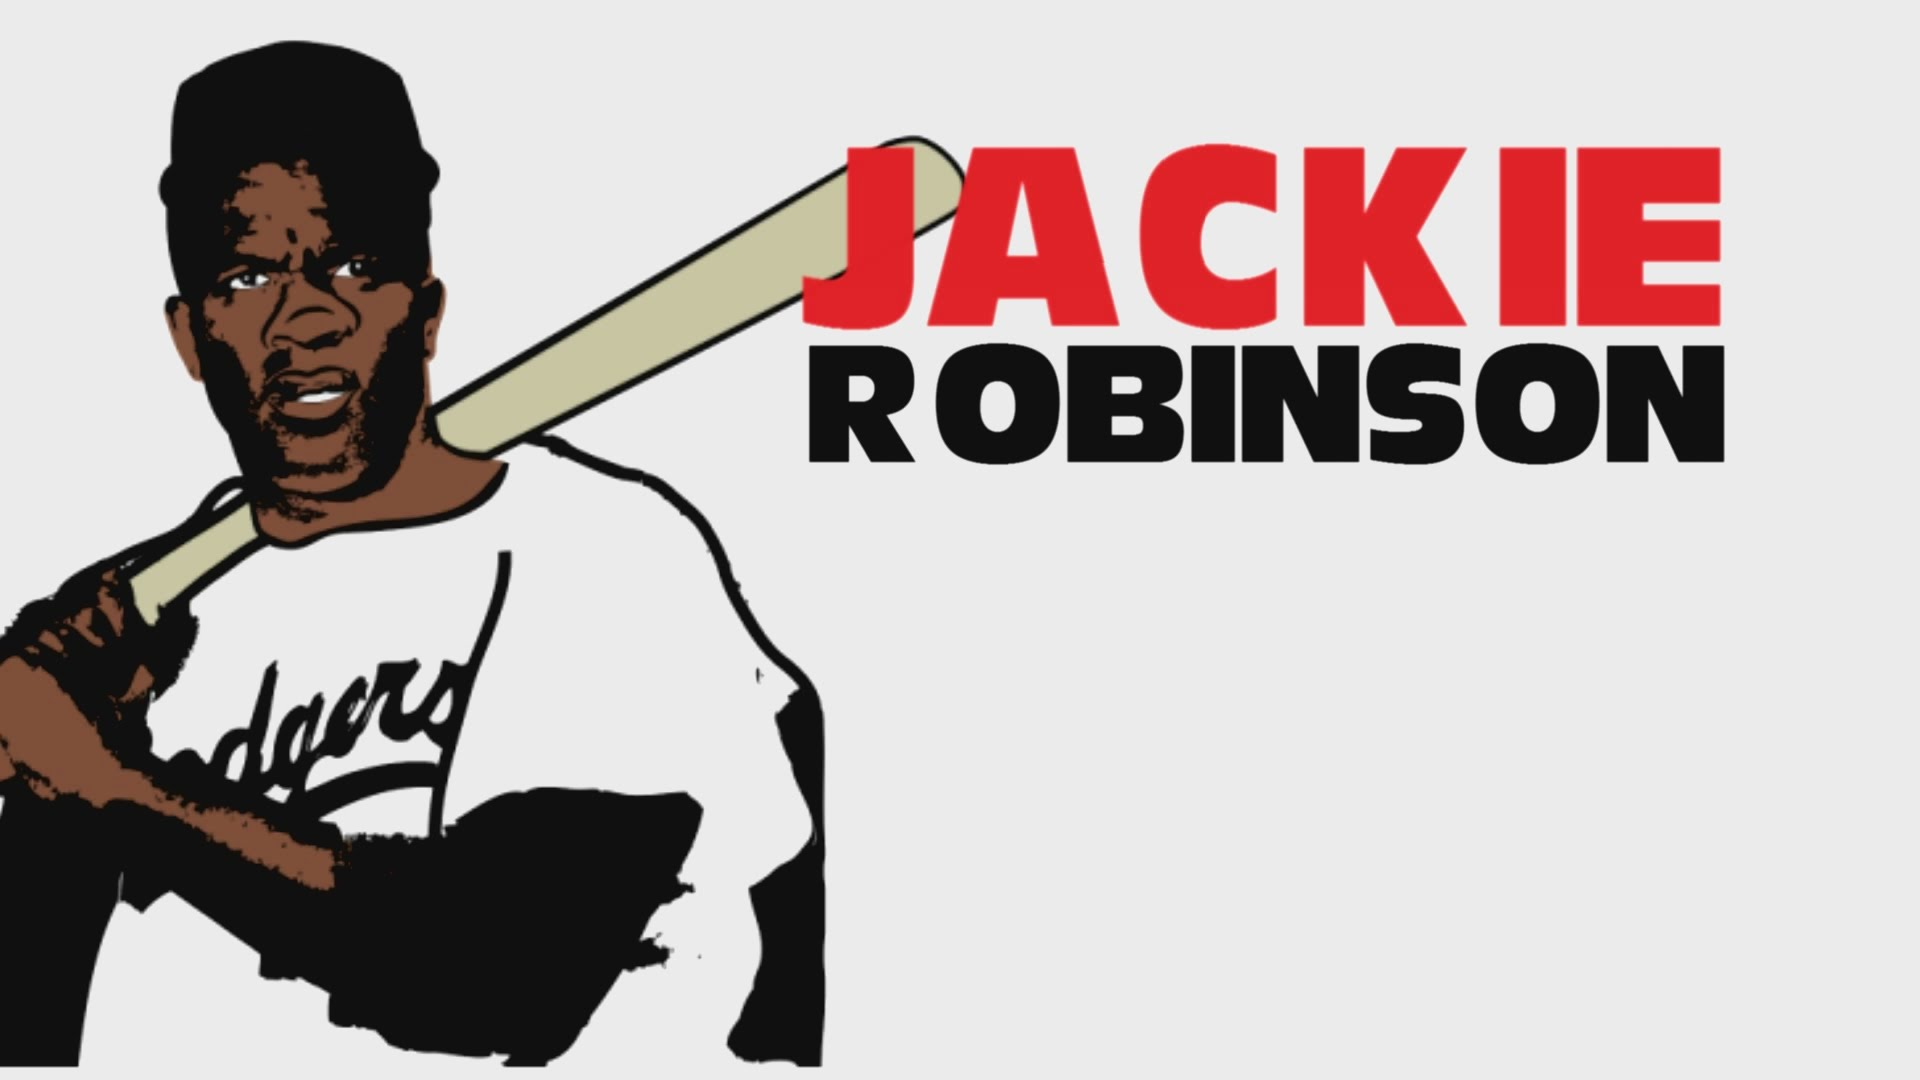 1920x1080 Celebrating Black History With Jackie Robinson For Kids (Cartoon